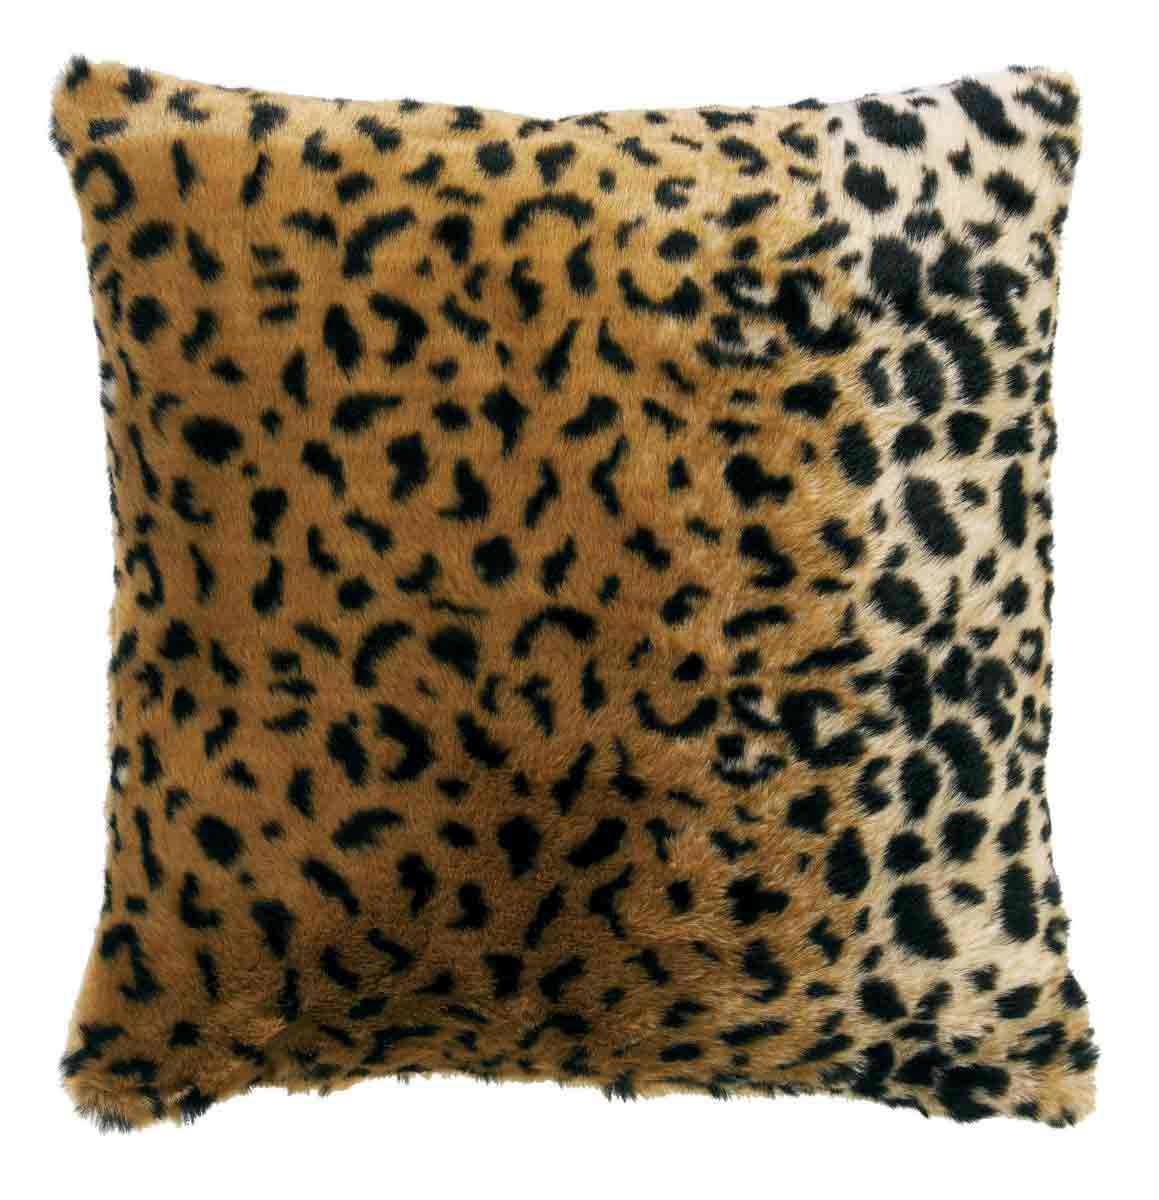 Orange Pillow The Leopard Home Decor (View 5 of 10)